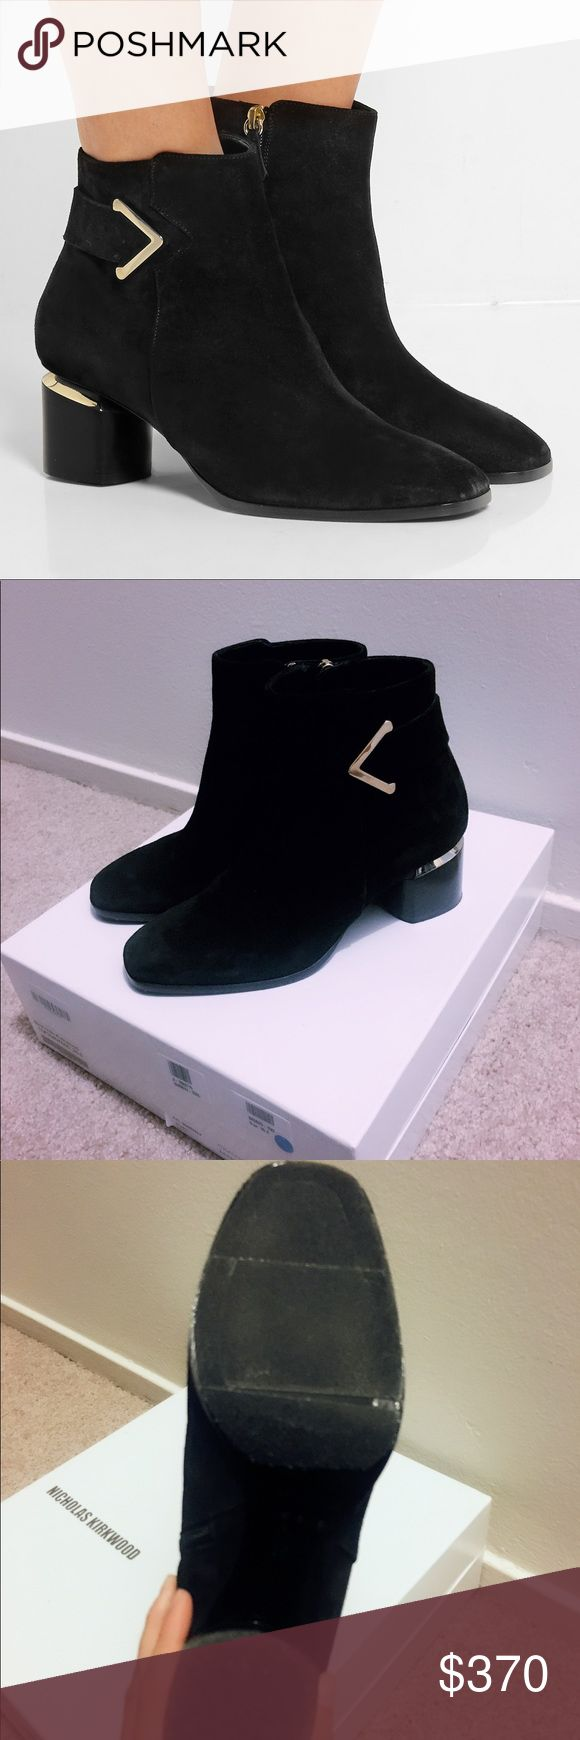 Nicholas kirkwood brannagh bootie Black suede, with sole protector, worn once Nicholas Kirkwood Shoes Ankle Boots & Booties